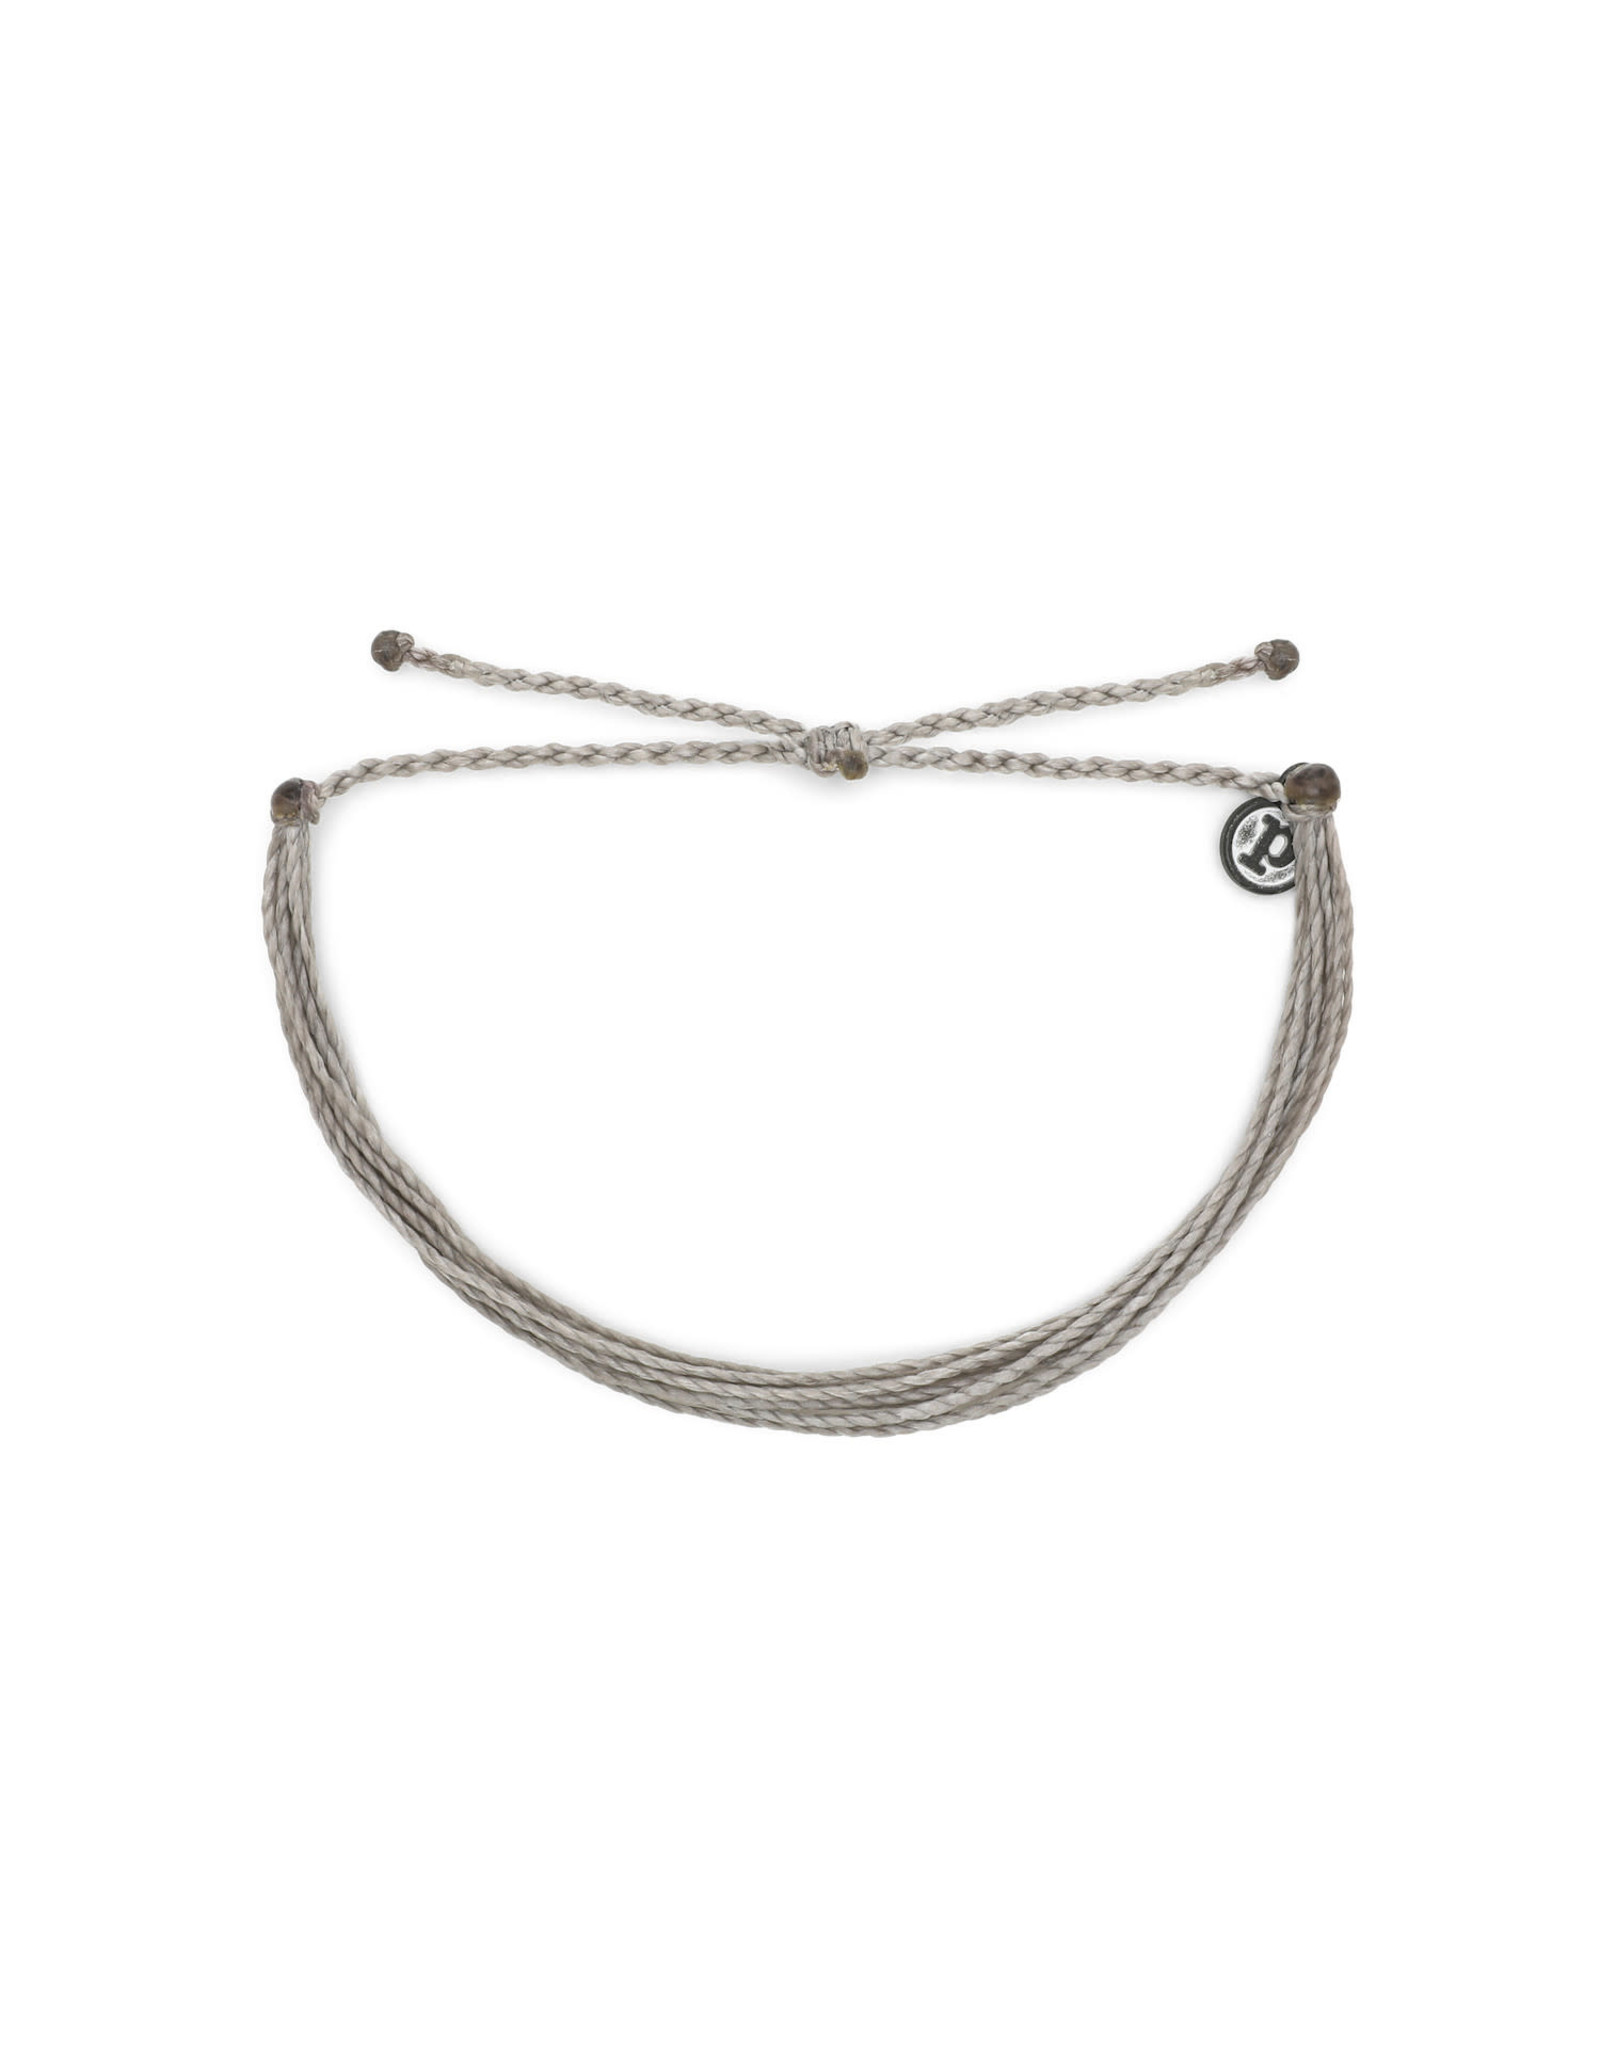 PURA VIDA BRACELETS BRIGHT SOLID SILVER LIGHT